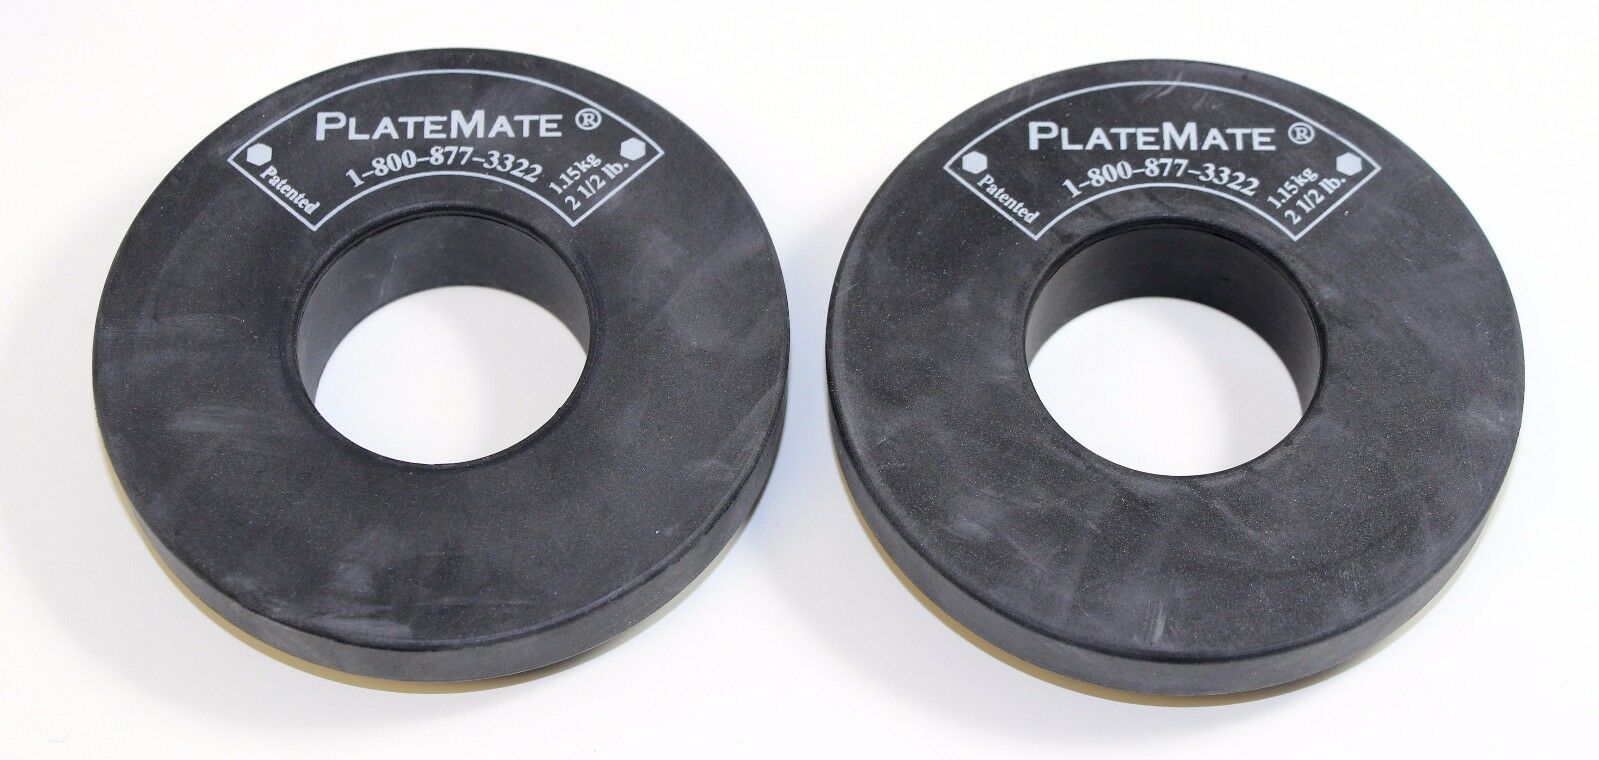 Platemates Microloading Weight Magnets - 2.5 lb. Donut - 1 Pair - NEW